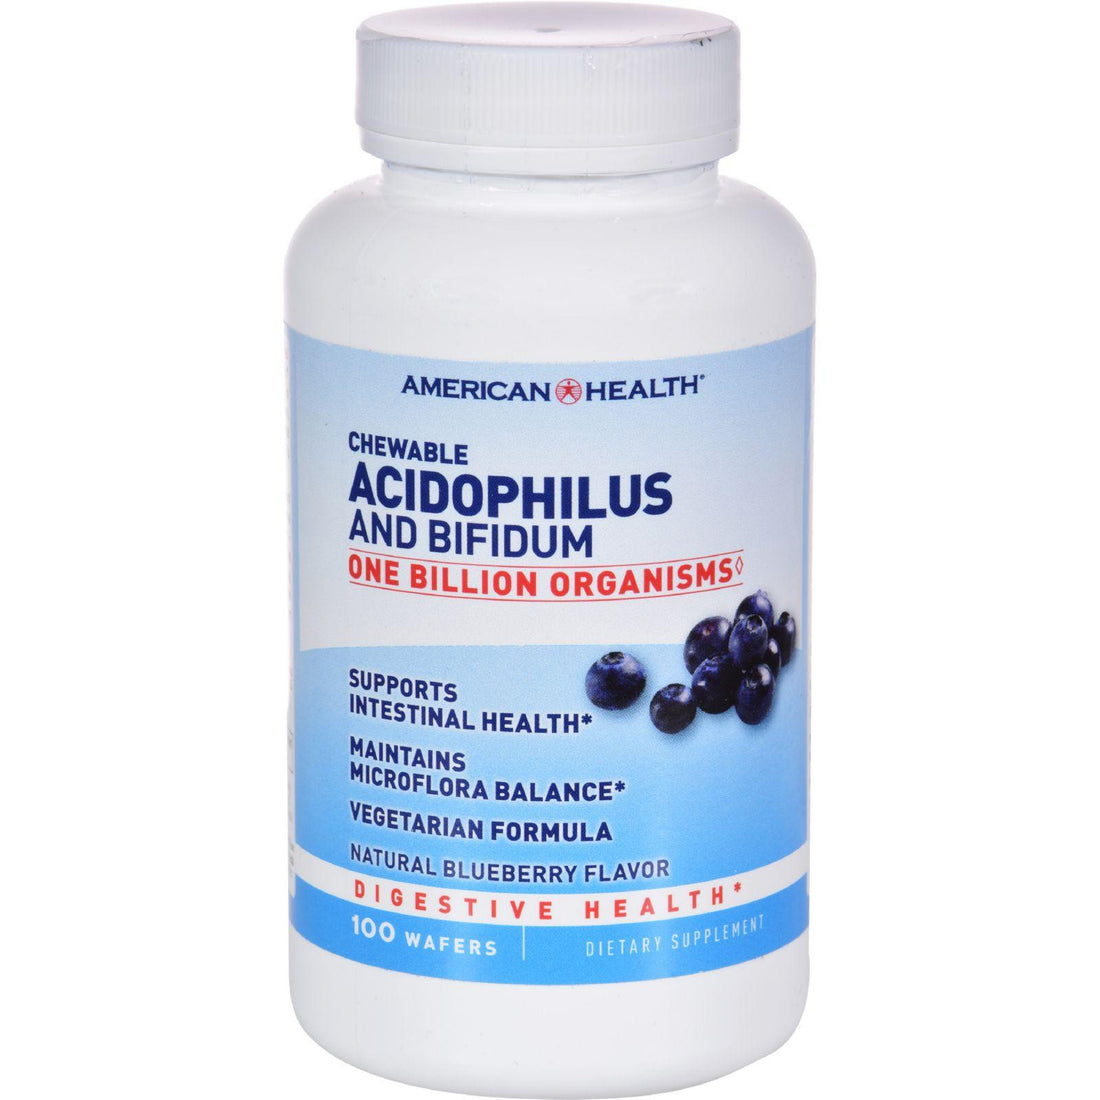 Mother Mantis: American Health Acidophilus And Bifidus Chewable Blueberry - 100 Wafers American Health